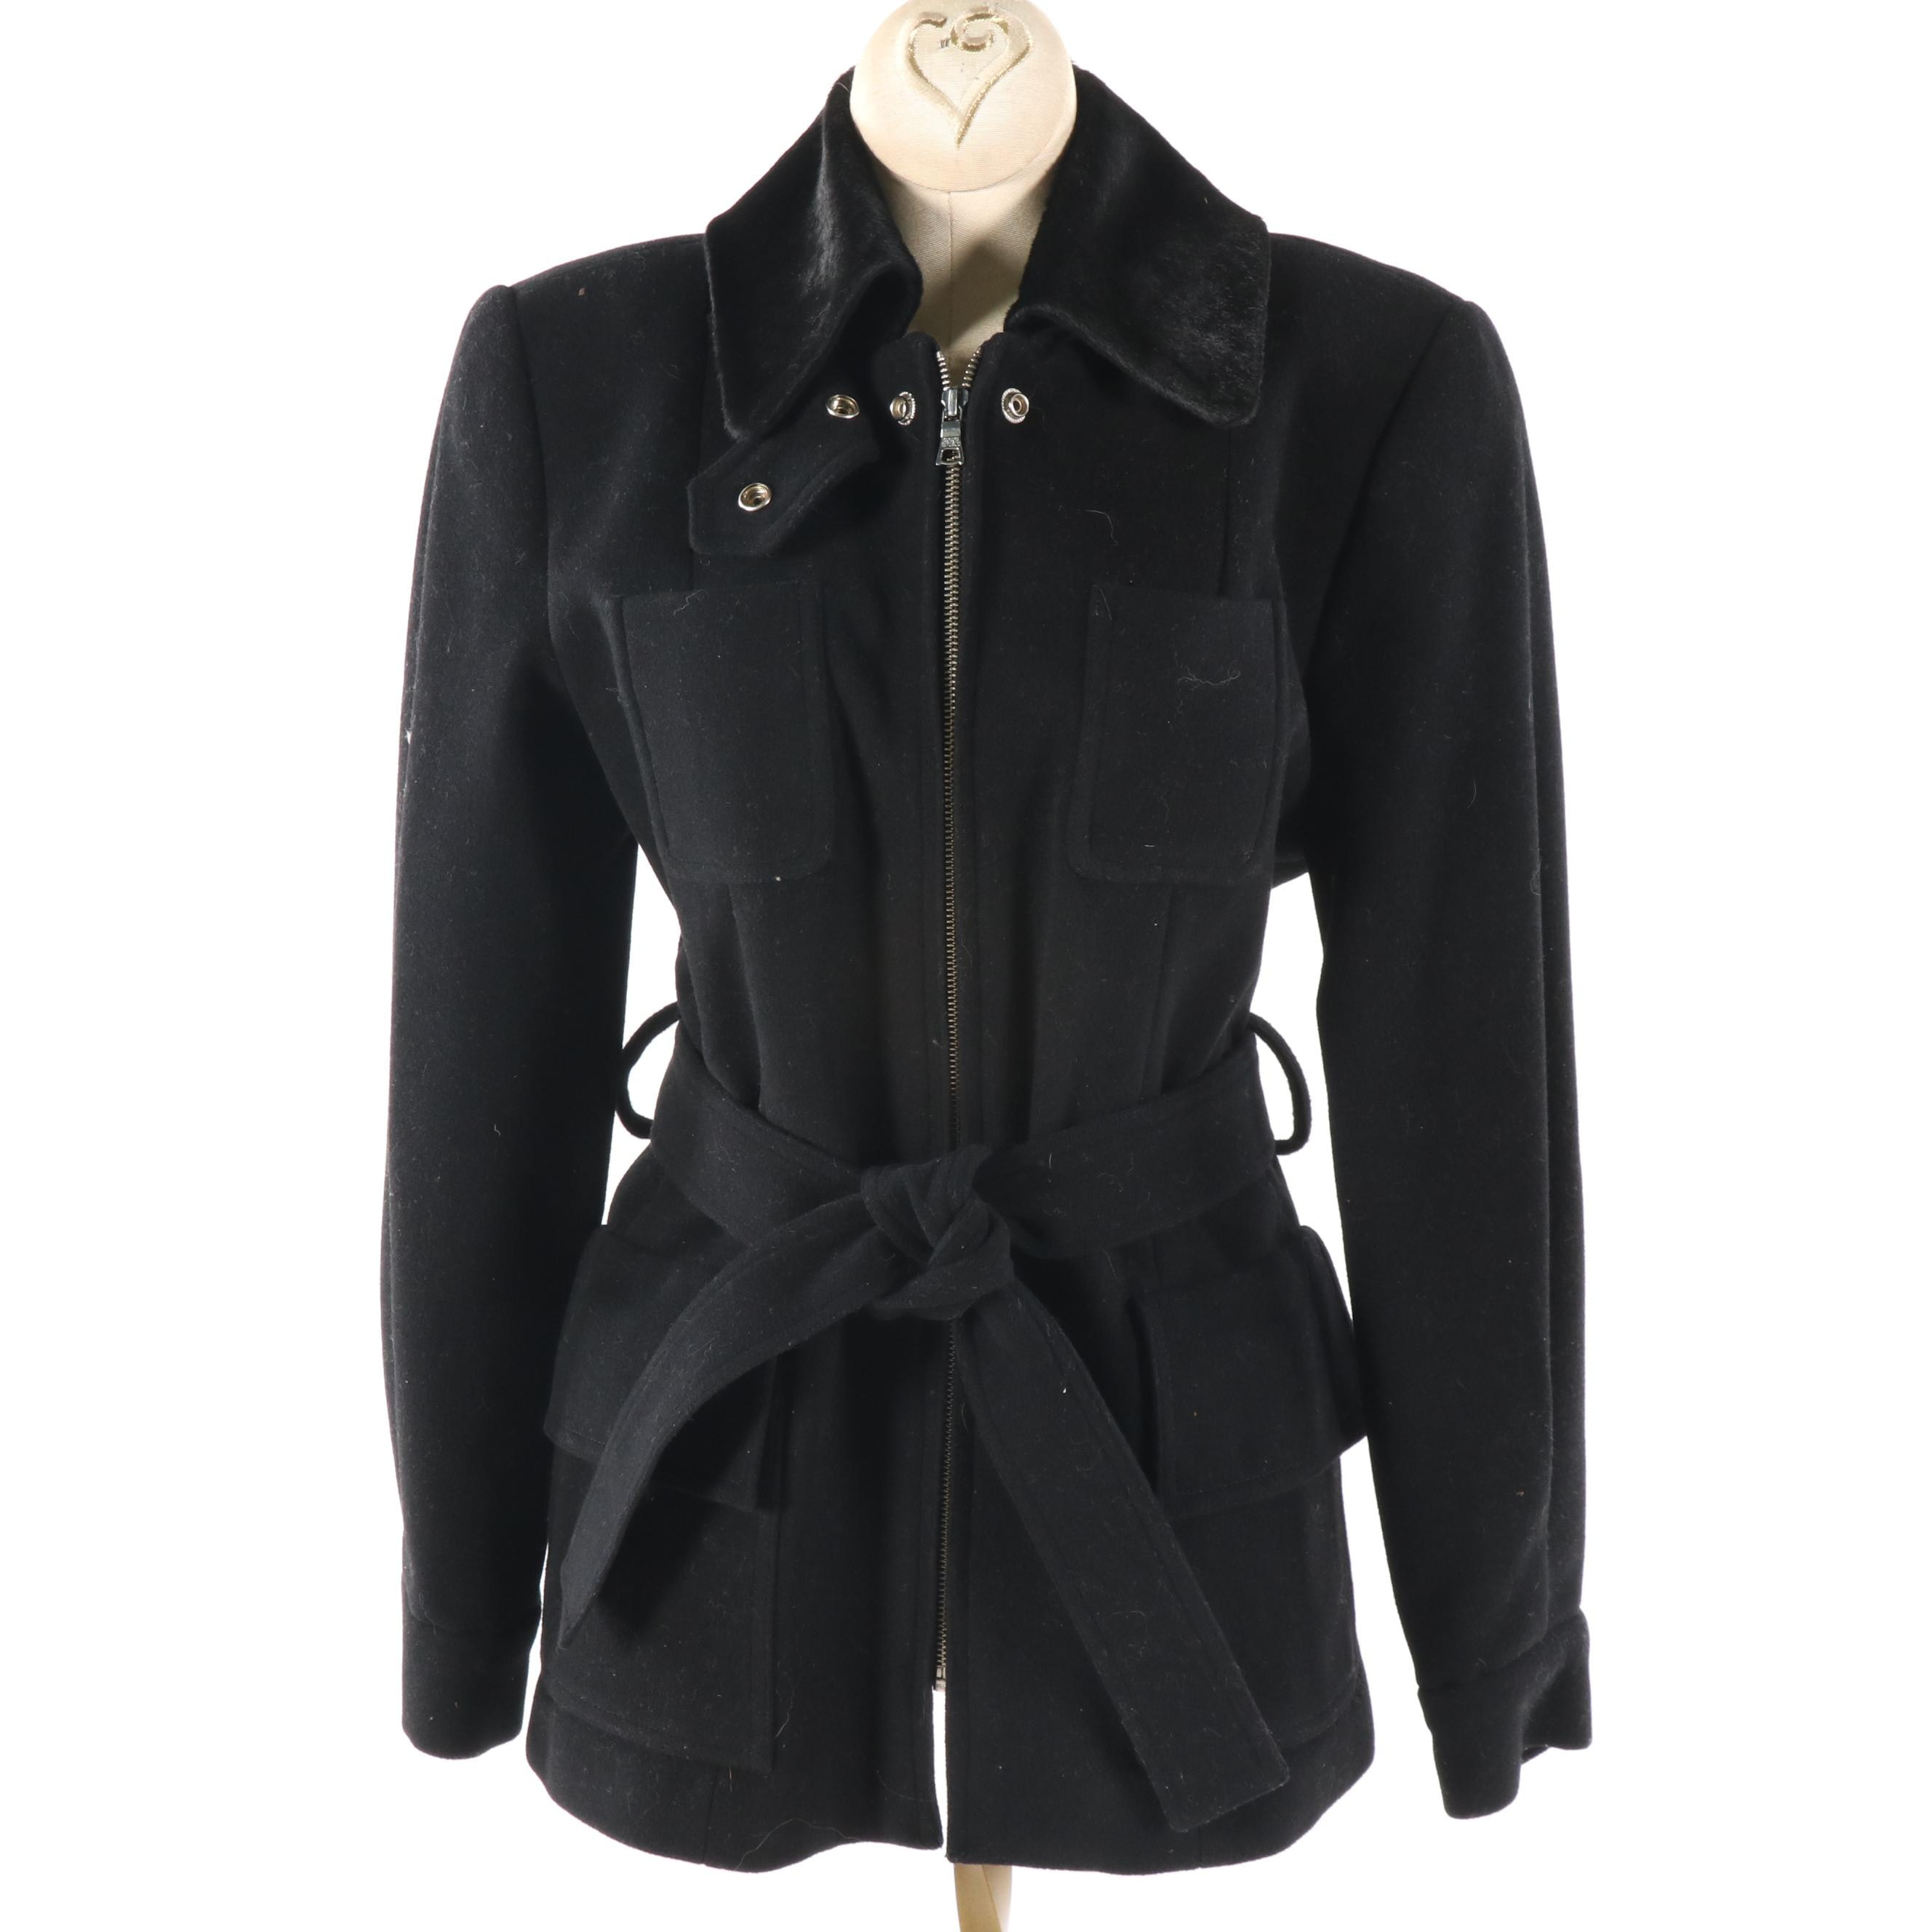 Women's Banana Republic Black Wool Blend Jacket